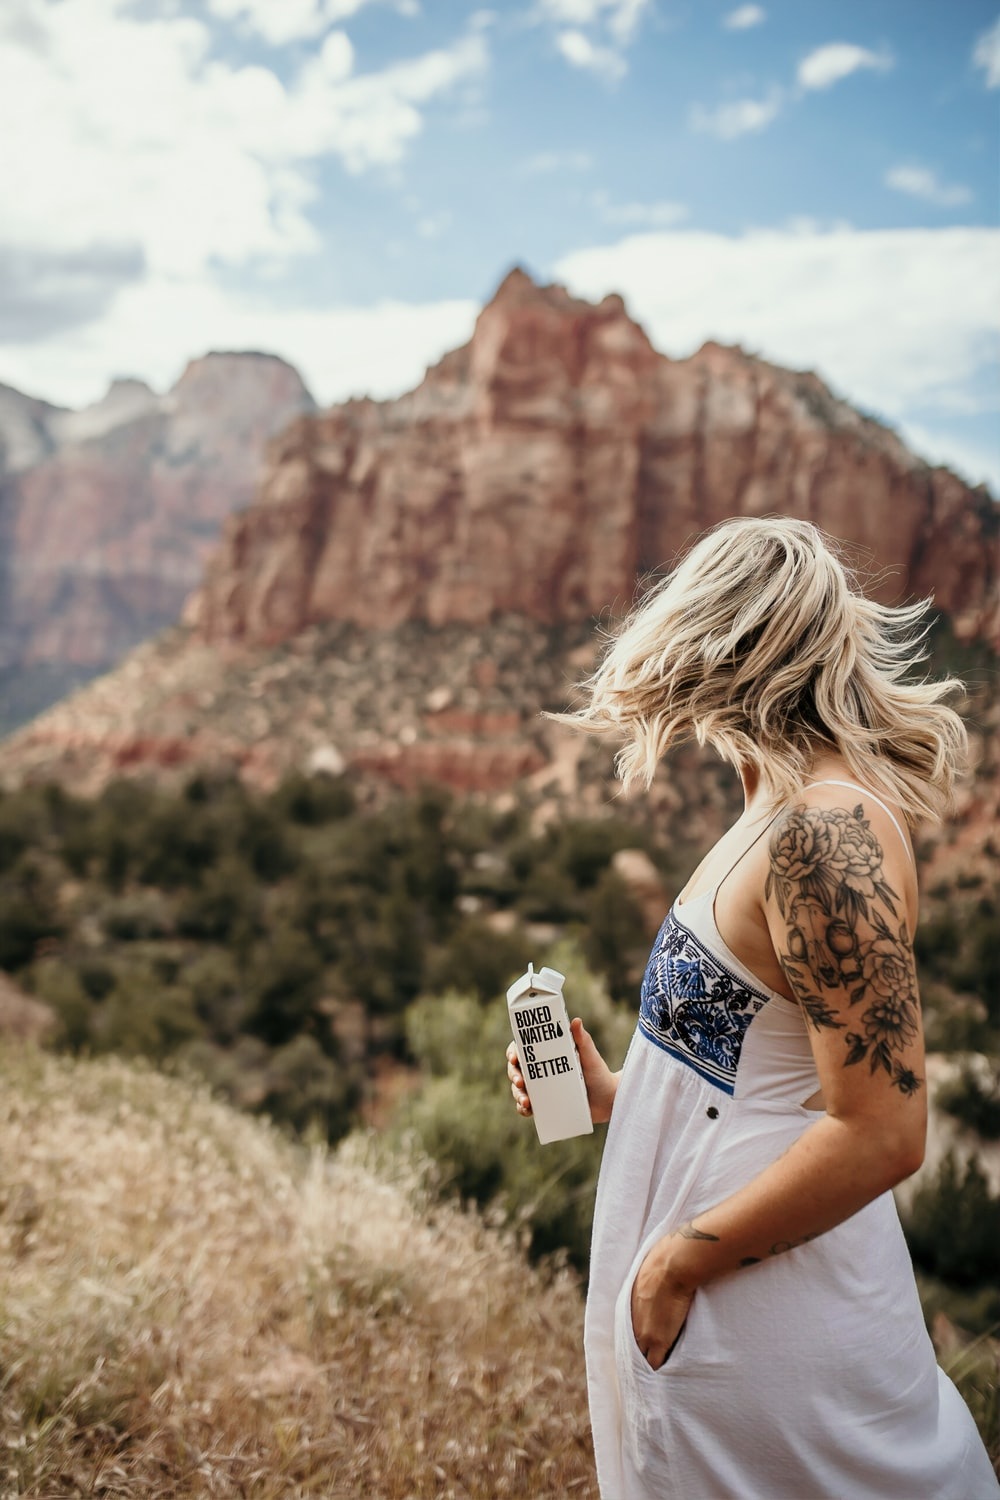 woman holding 500 mL of Boxed Water at the mountain